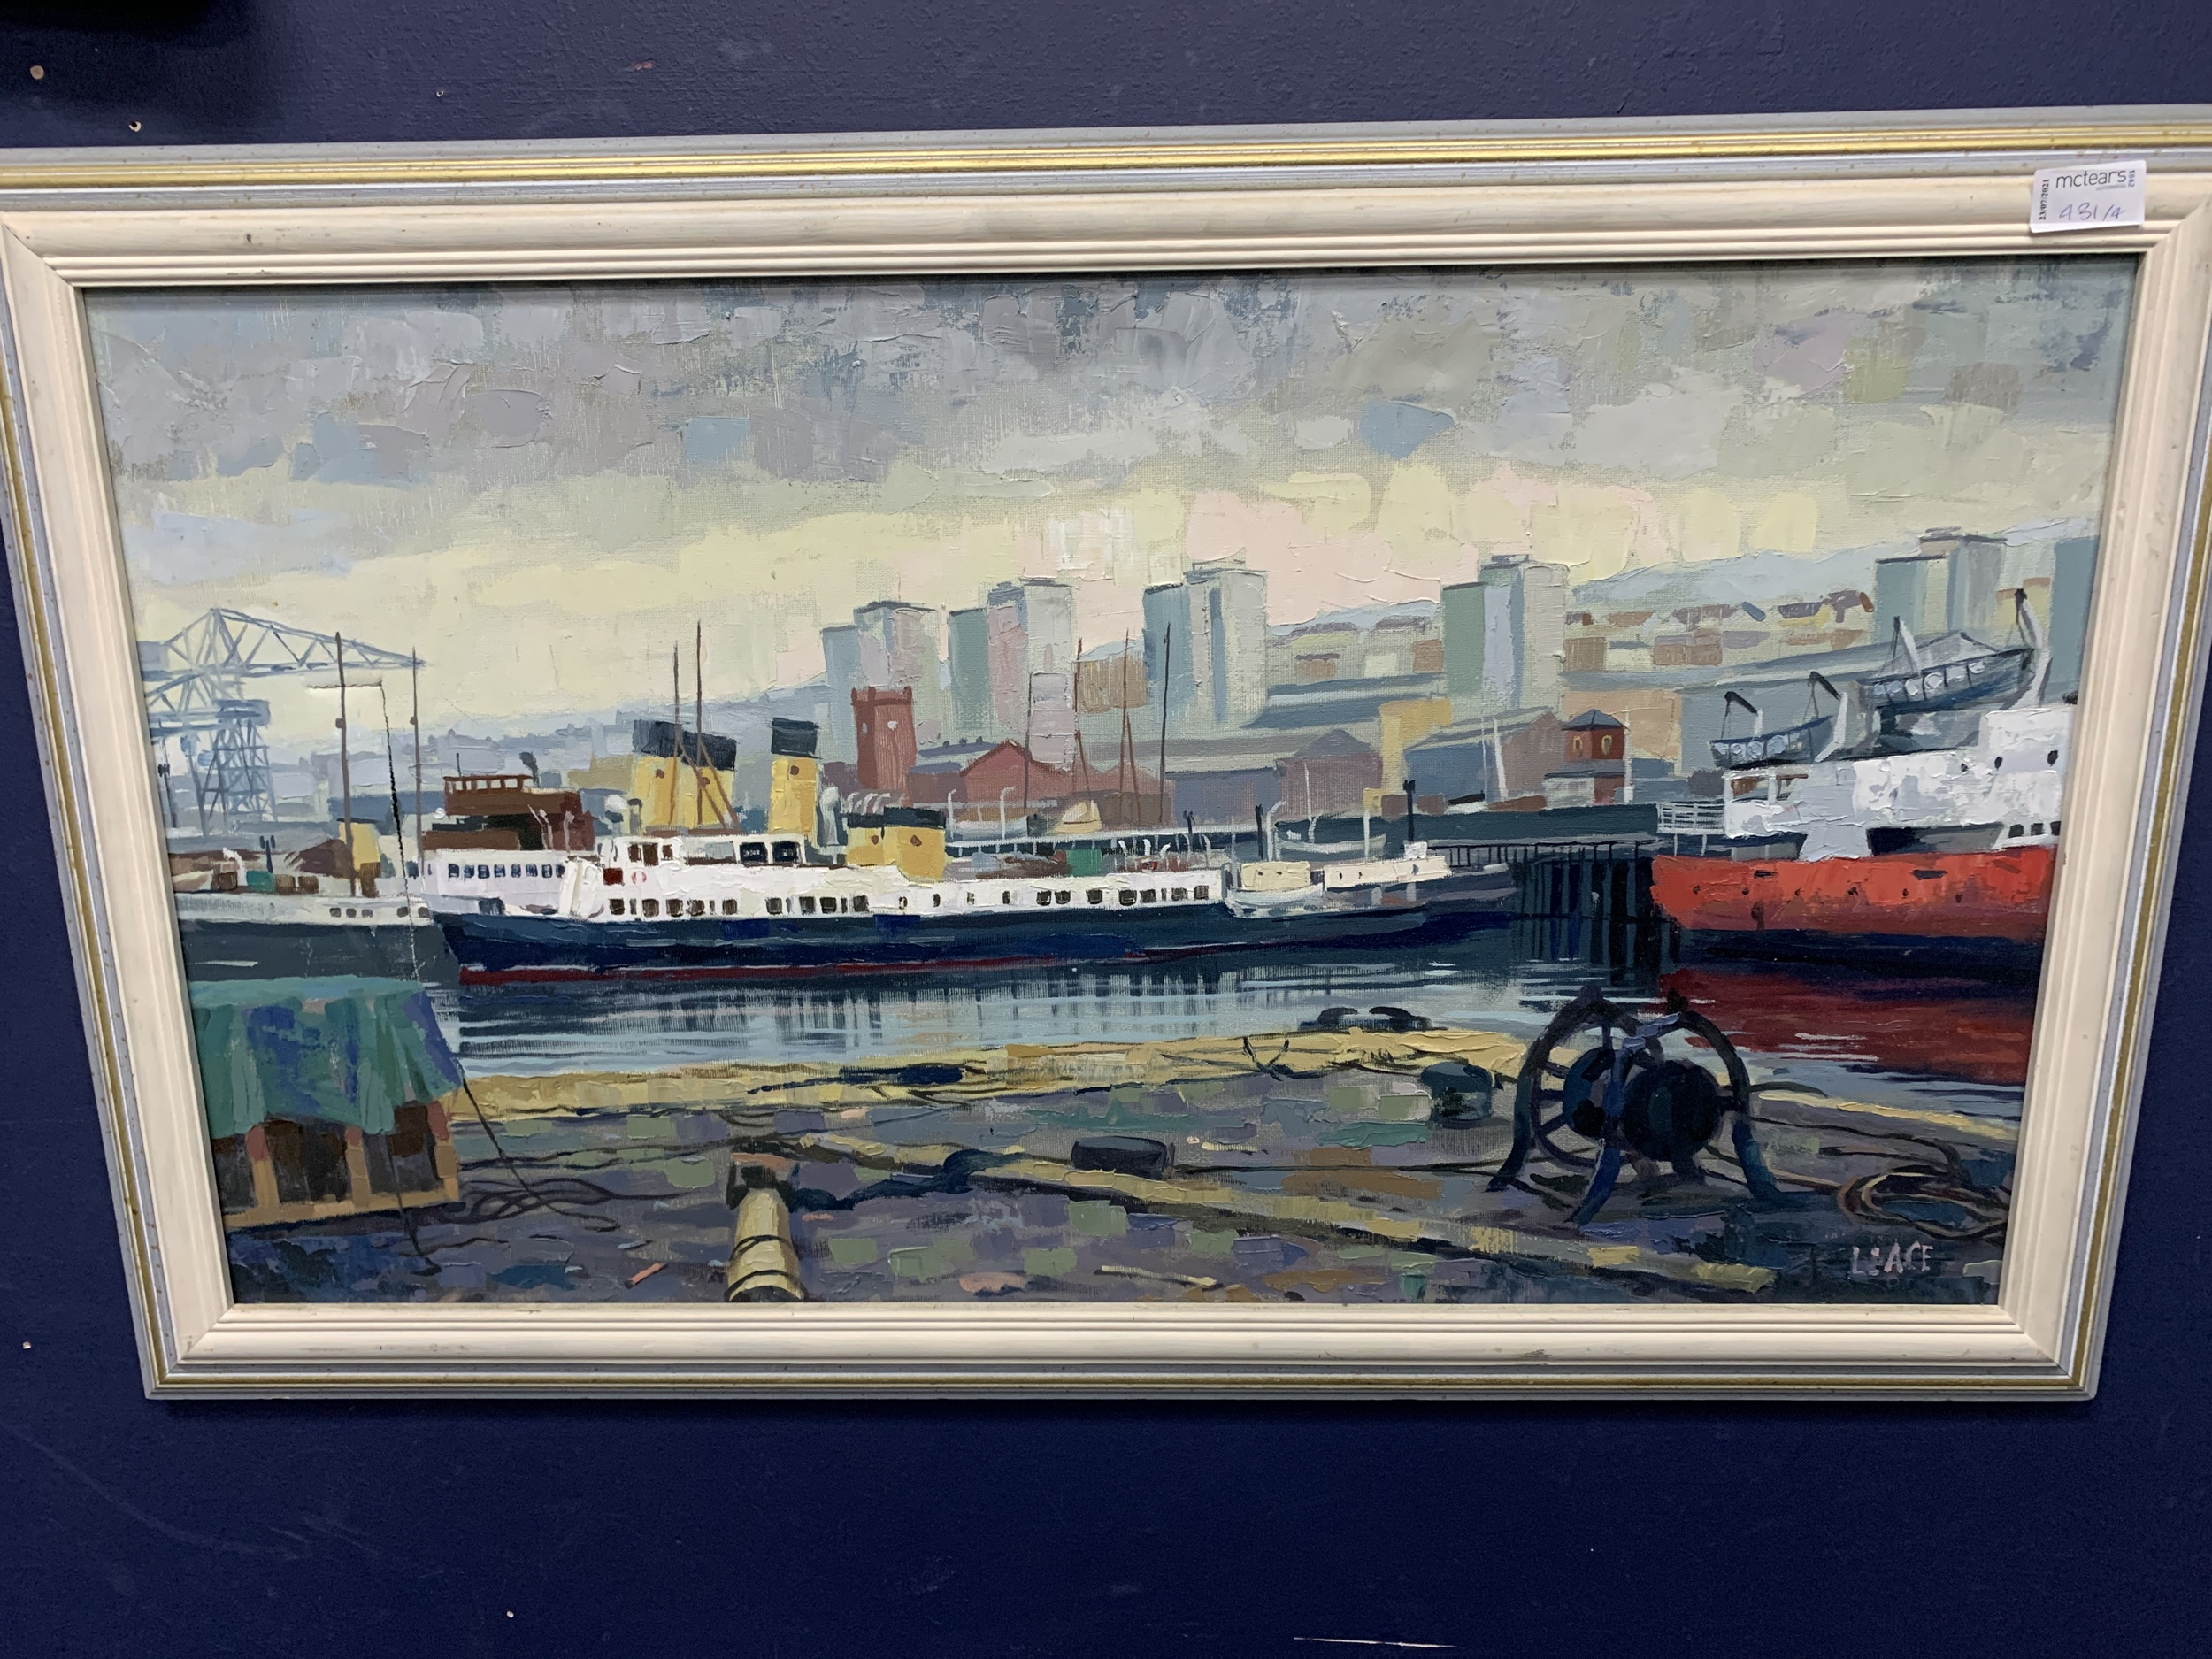 GARRY BURLA, BOATING SCENE, FRAMED ACRYLIC PAINTING, ALONG WITH OTHER PICTURES - Image 4 of 4